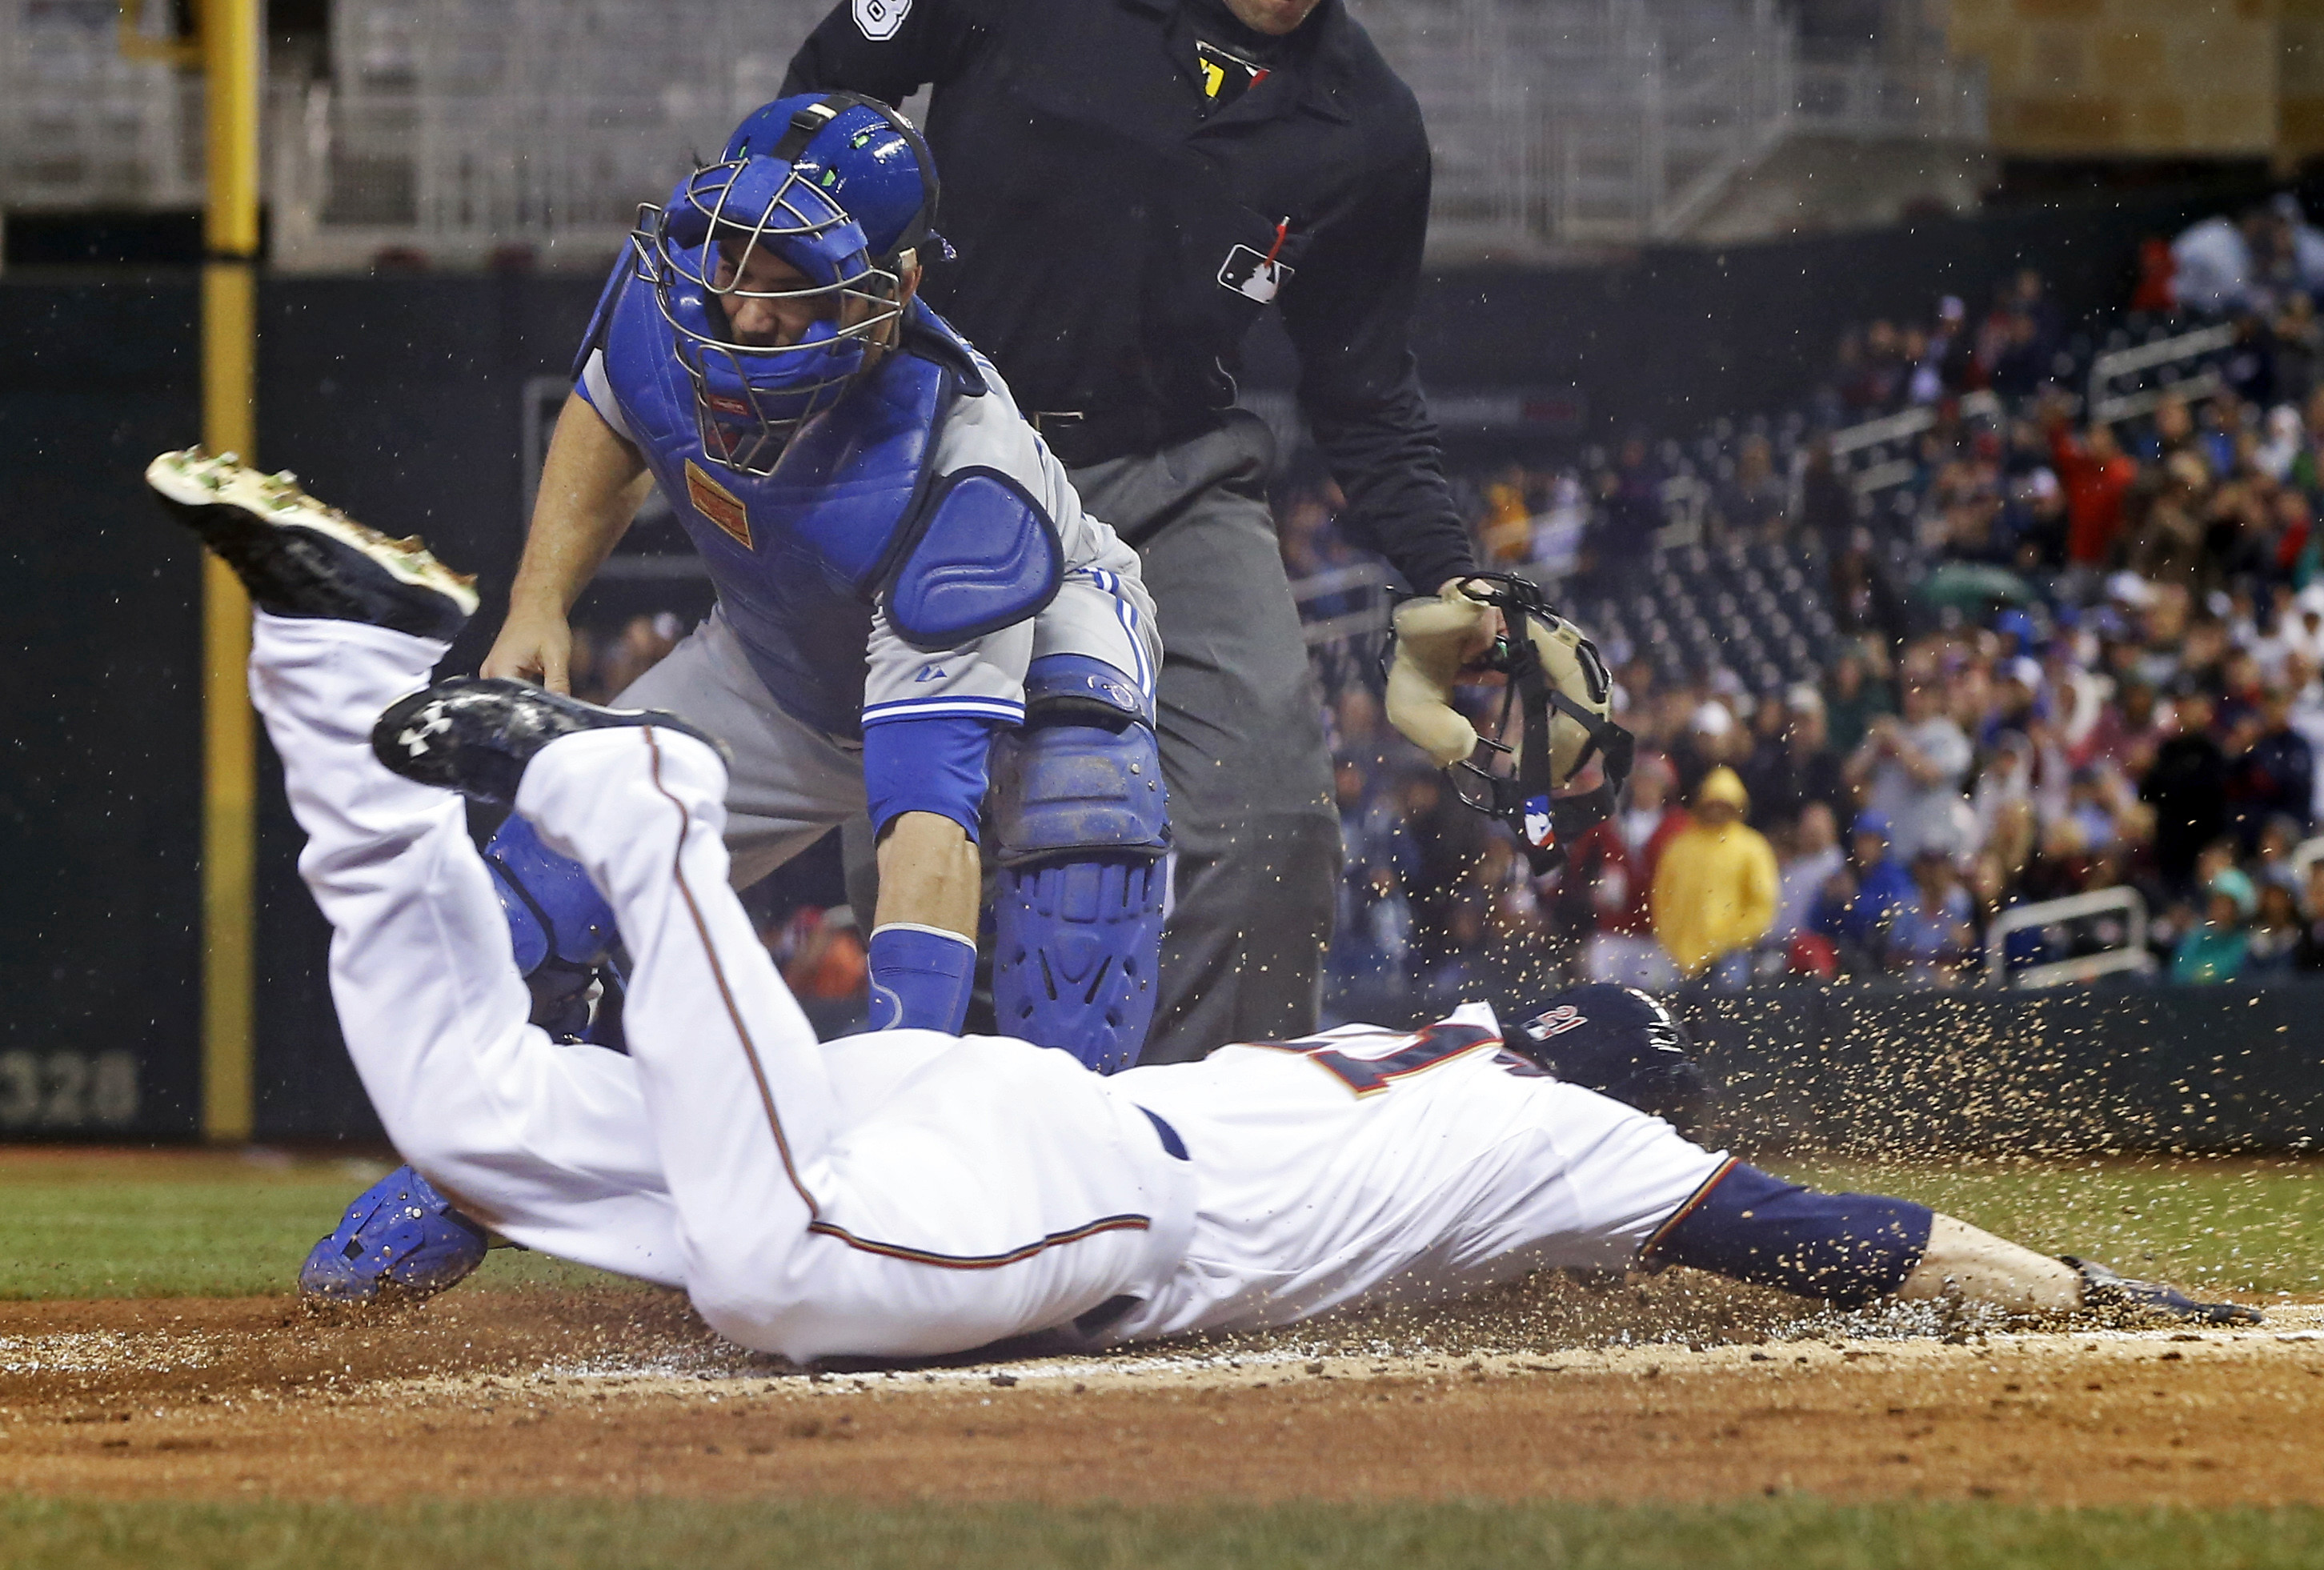 Minnesota Twins' Shane Robinson, bottom, beats the tag by Toronto Blue Jays catcher Russell Martin to score on a hit by Torii Hunter off Mark Buehrle in the first inning of a baseball game, Friday, May 29, 2015, in Minneapolis. (AP Photo/Jim Mone)